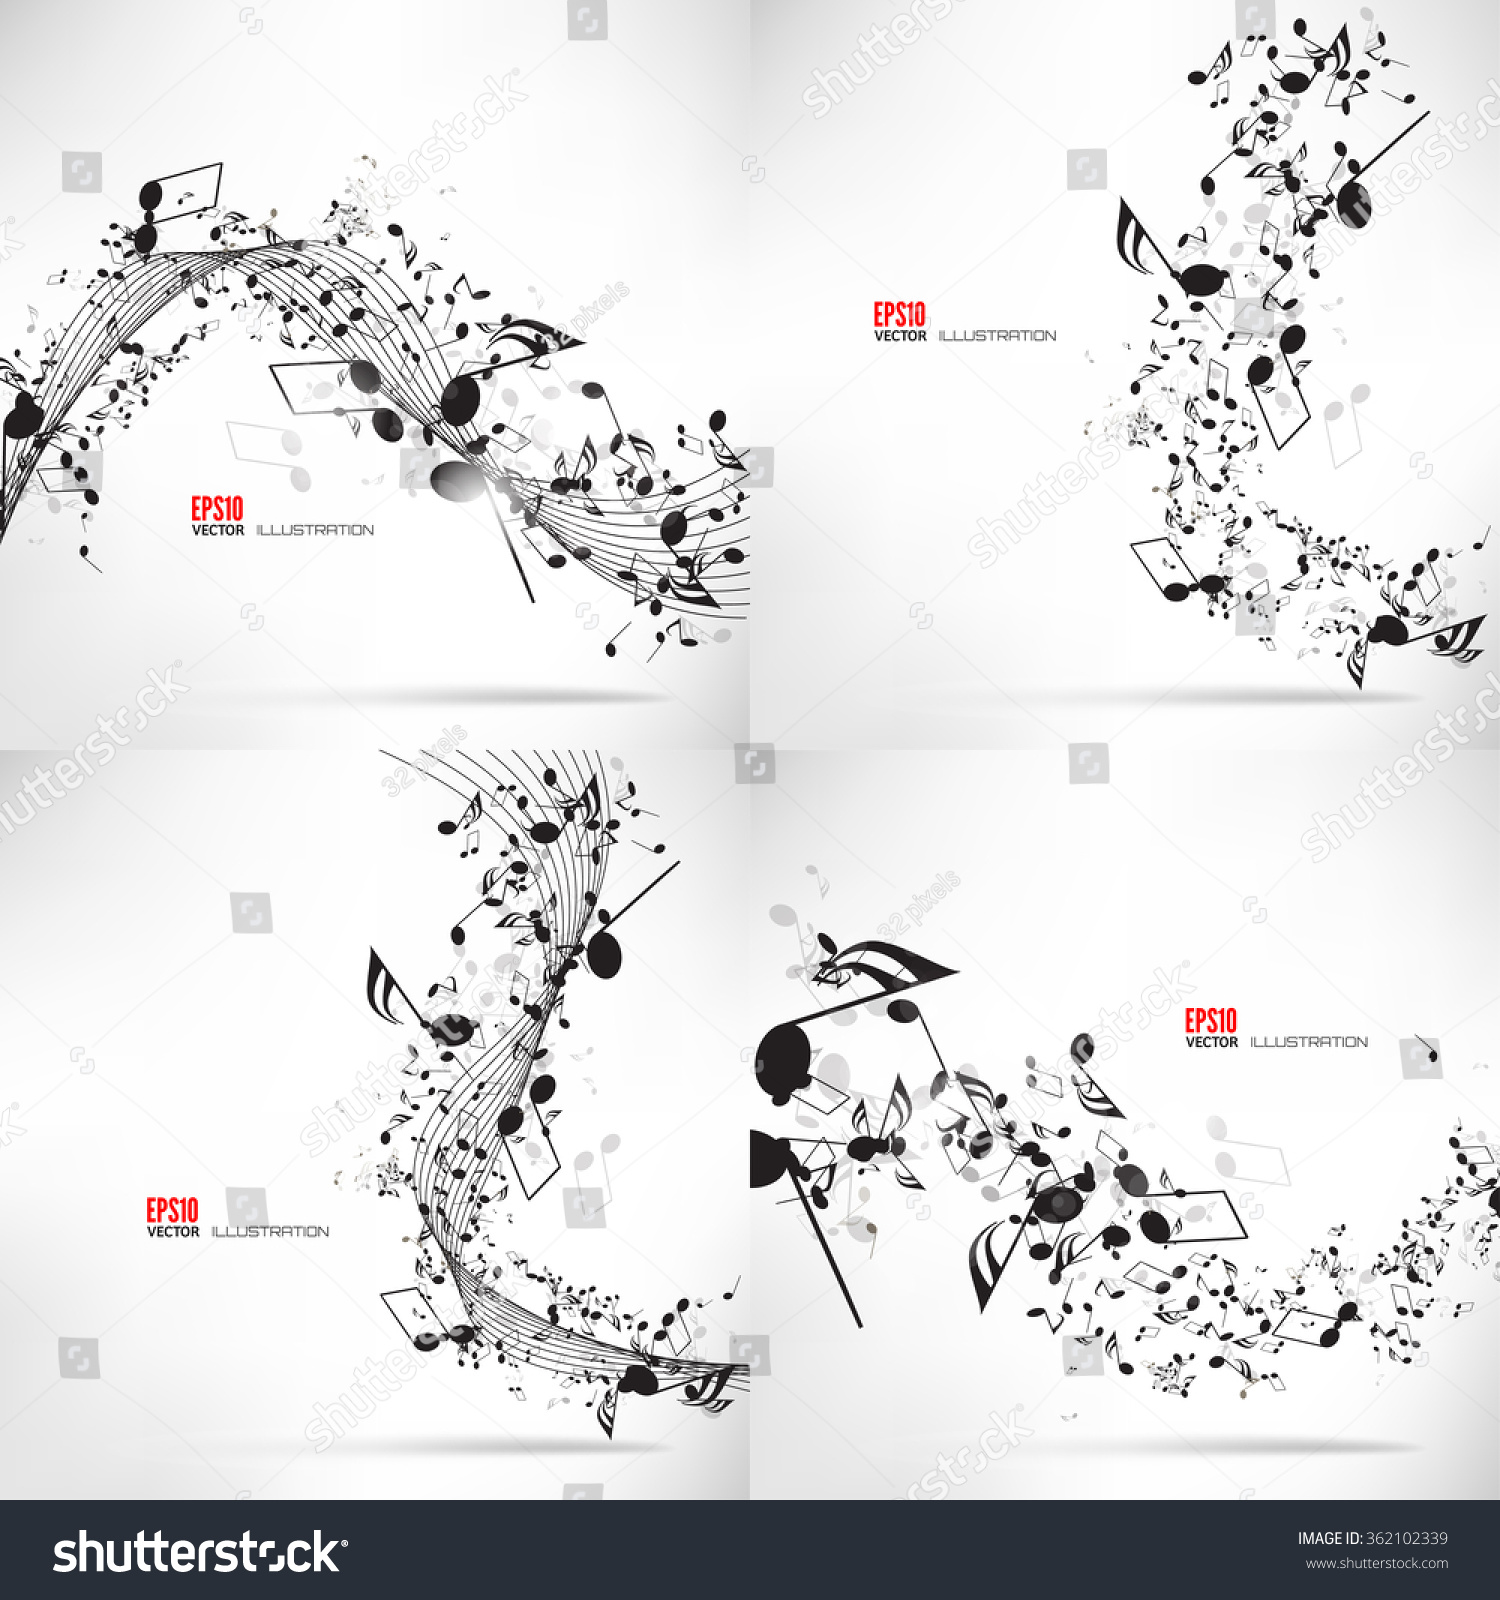 Music notes shadowabstract musical background vector stock vector music notes and shadowabstract musical background vector illustrationnsural musical notation biocorpaavc